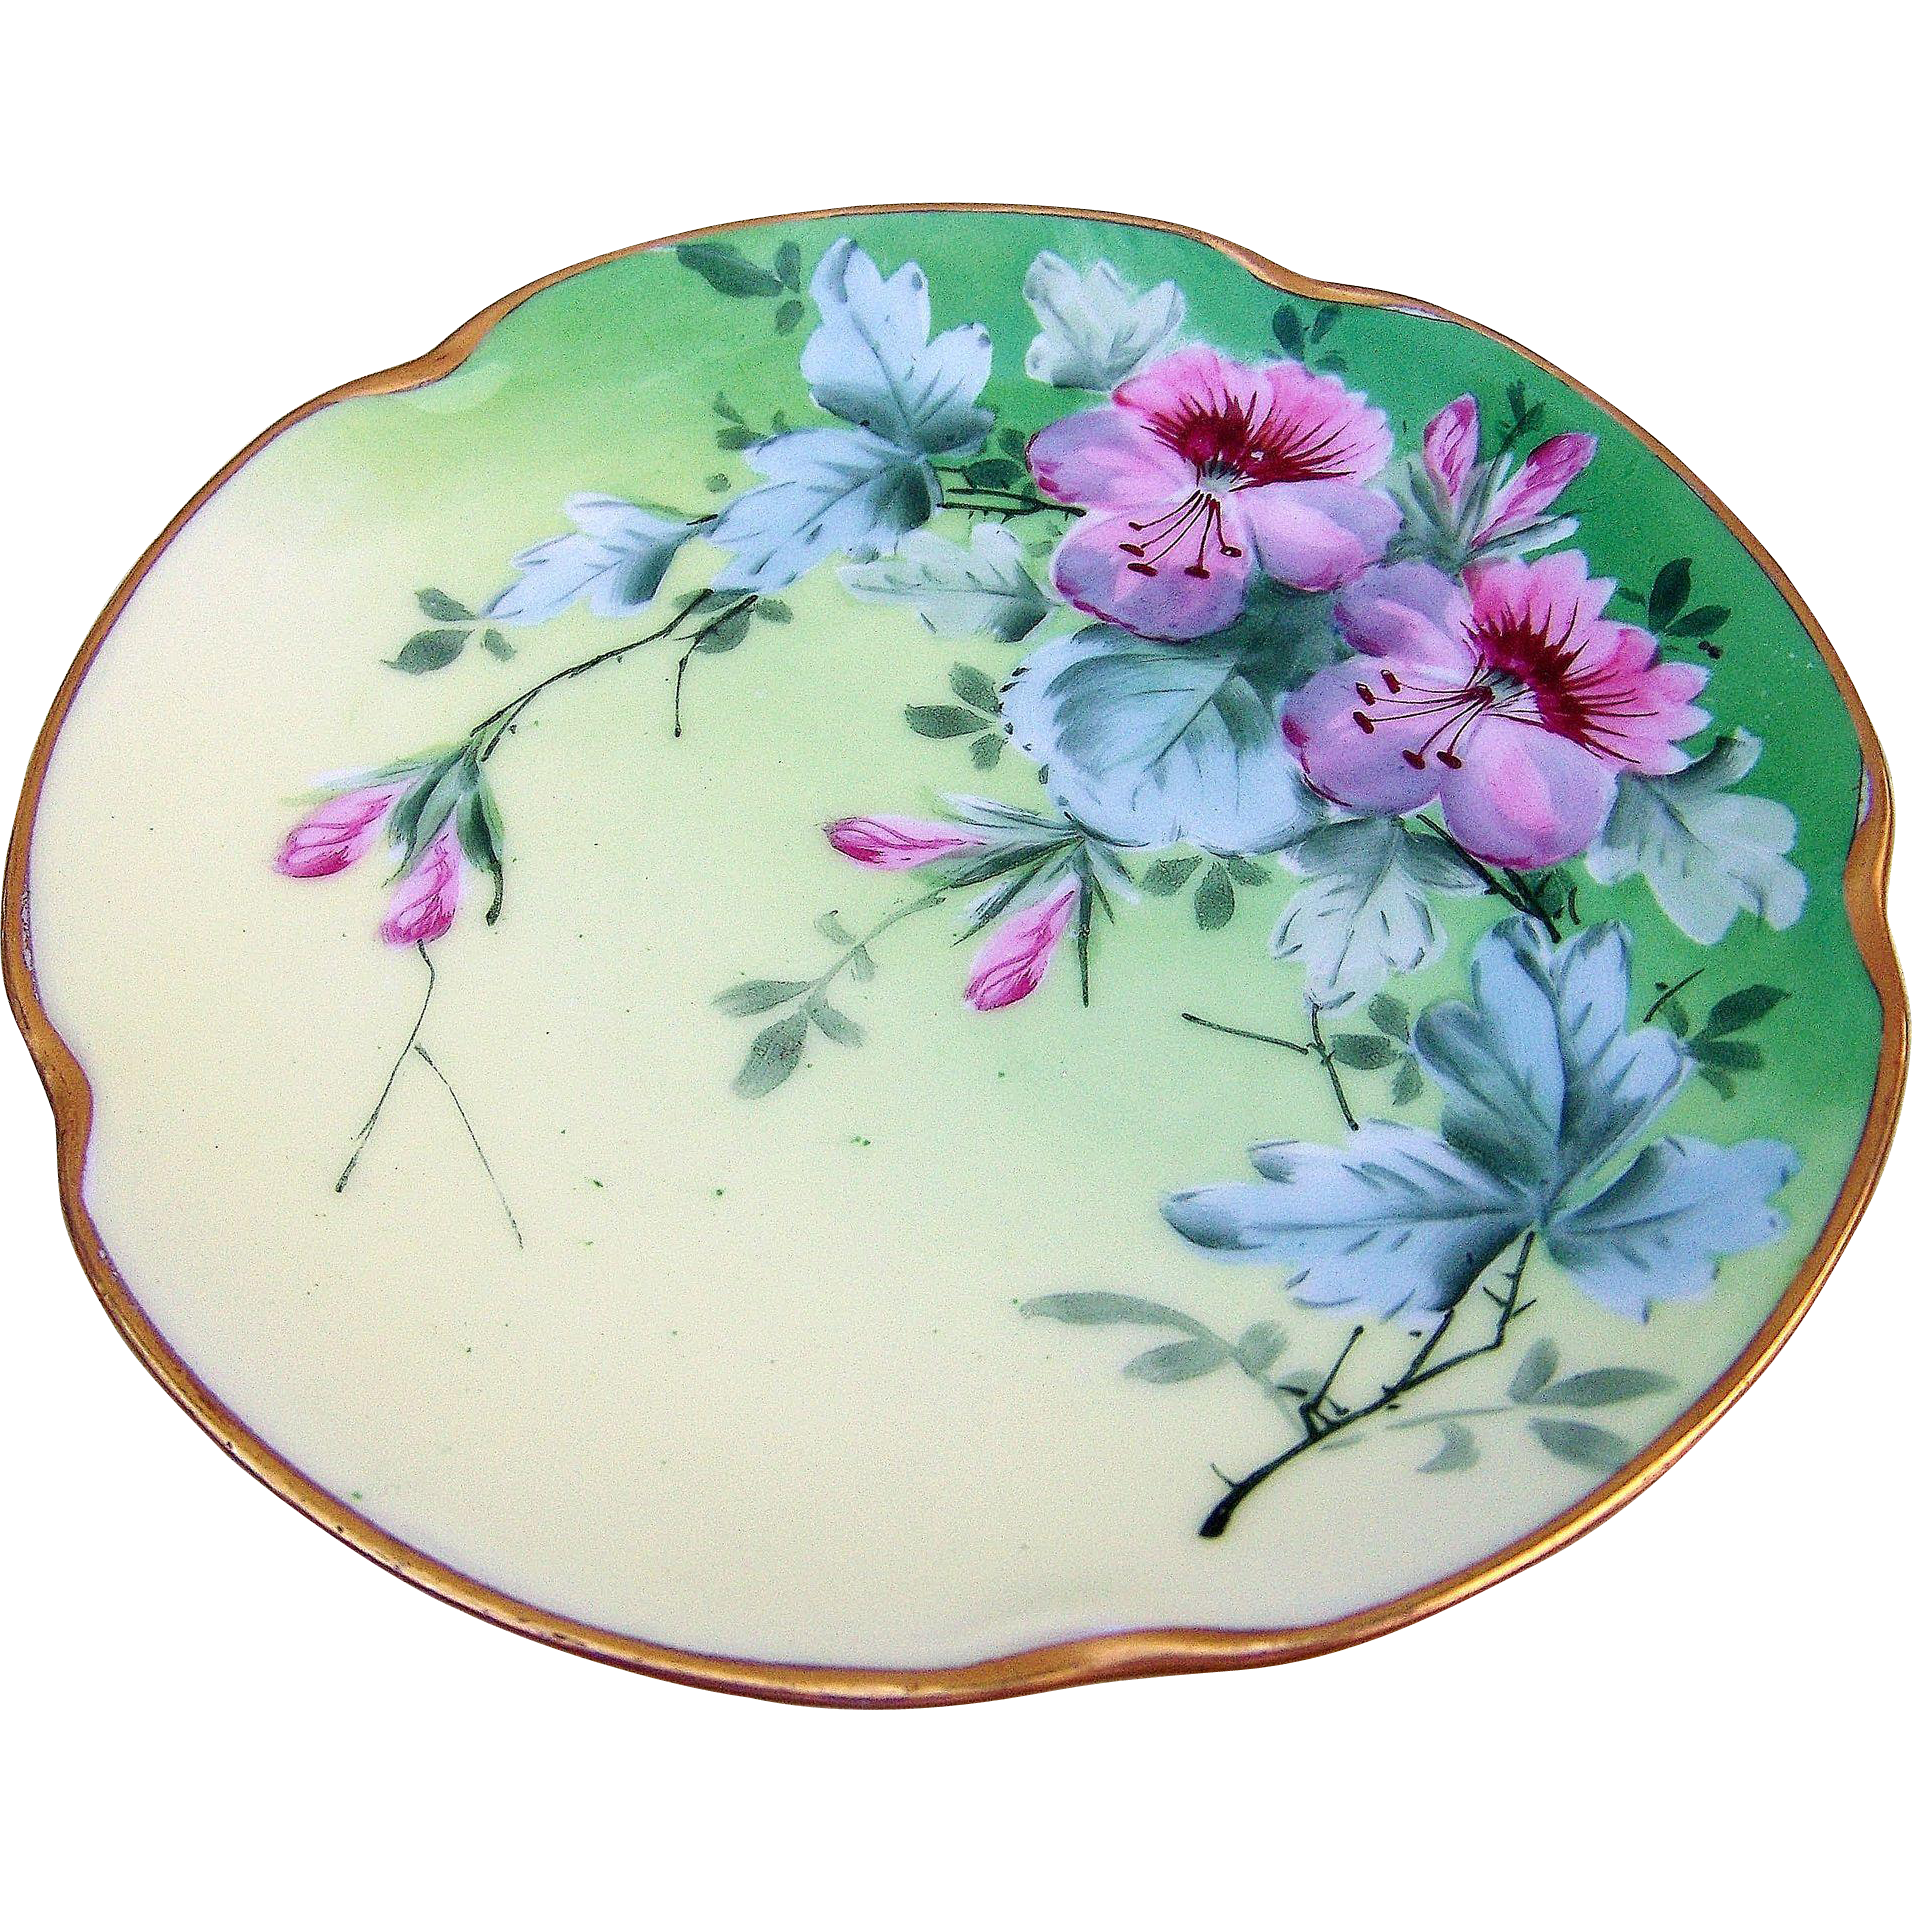 "Gorgeous J & C Bavaria & J.H.Stouffer Studio of Chicago Early 1900's Hand Painted Bright & Vibrant ""Pink Flowers"" Floral Plate"